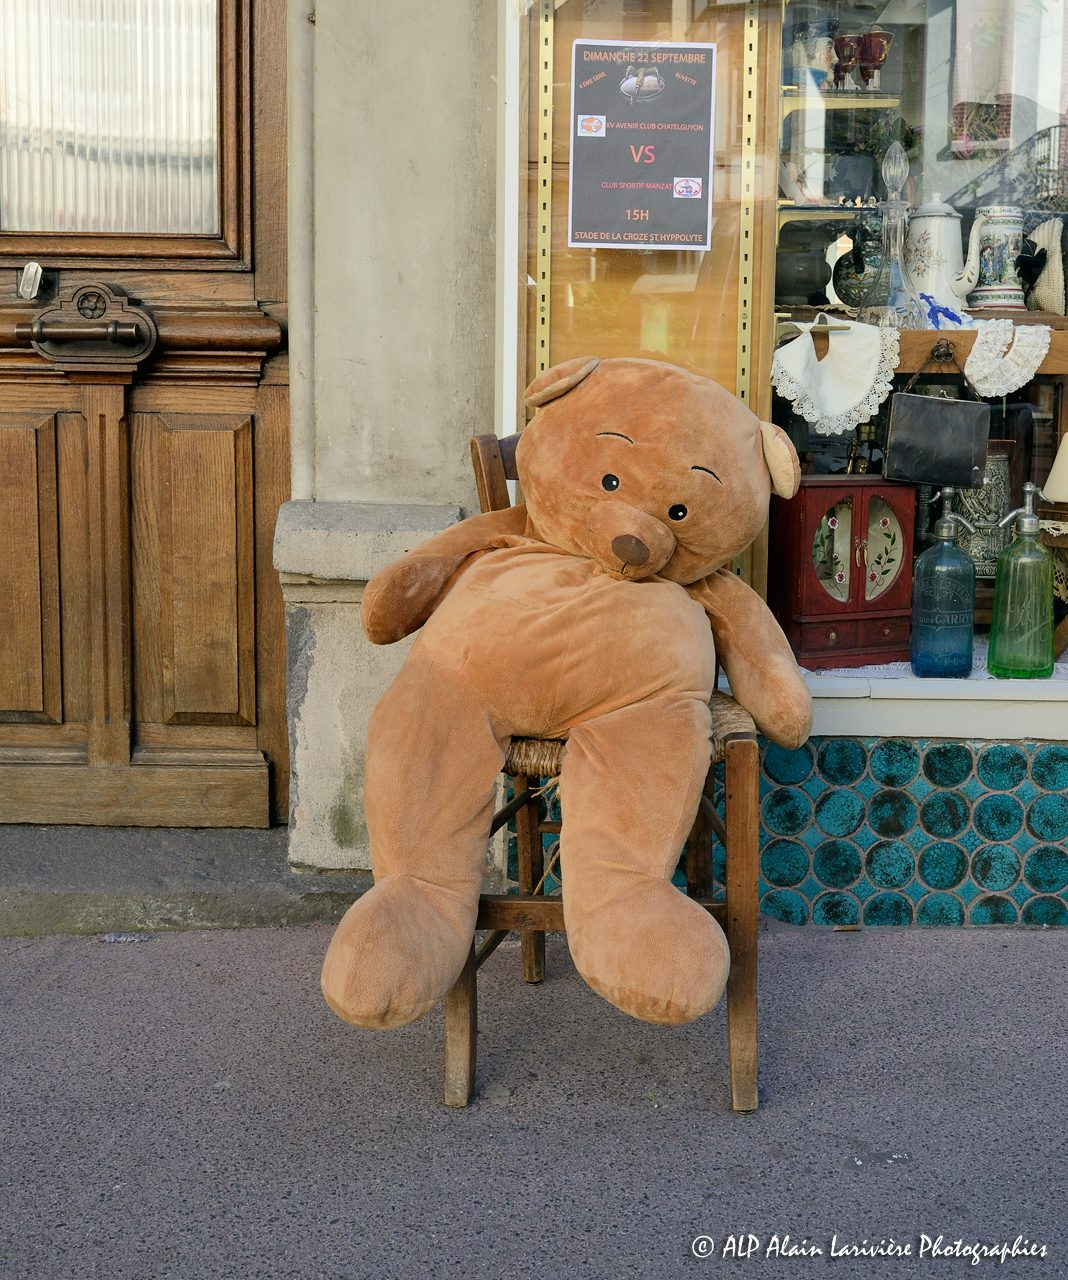 Grosse fatigue chez nounours